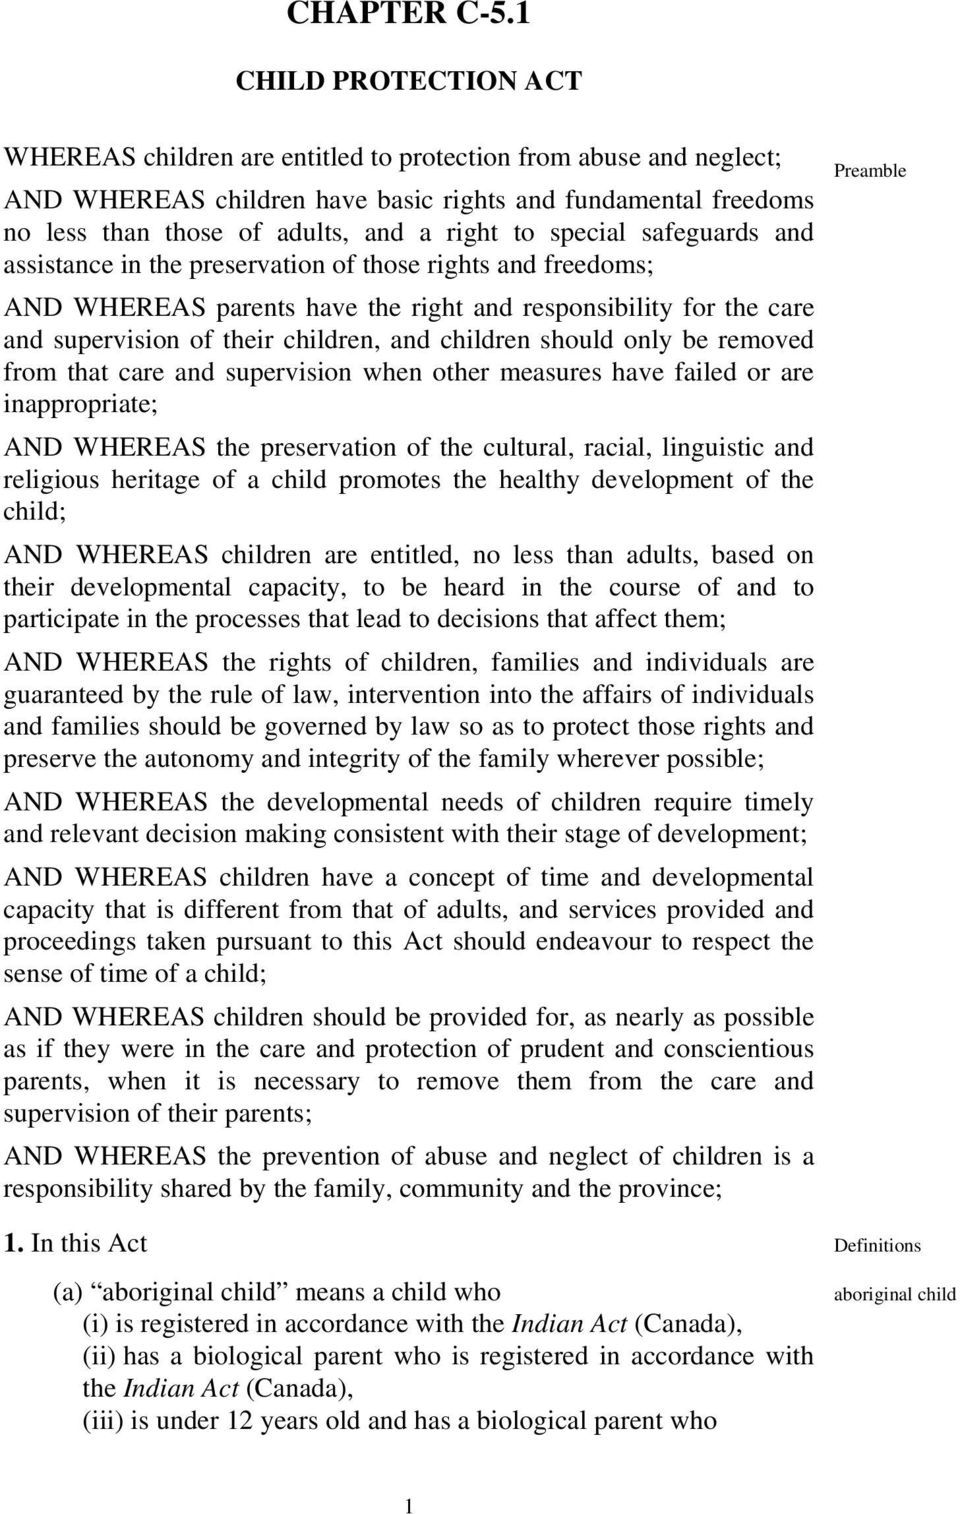 special safeguards and assistance in the preservation of those rights and freedoms; AND WHEREAS parents have the right and responsibility for the care and supervision of their children, and children